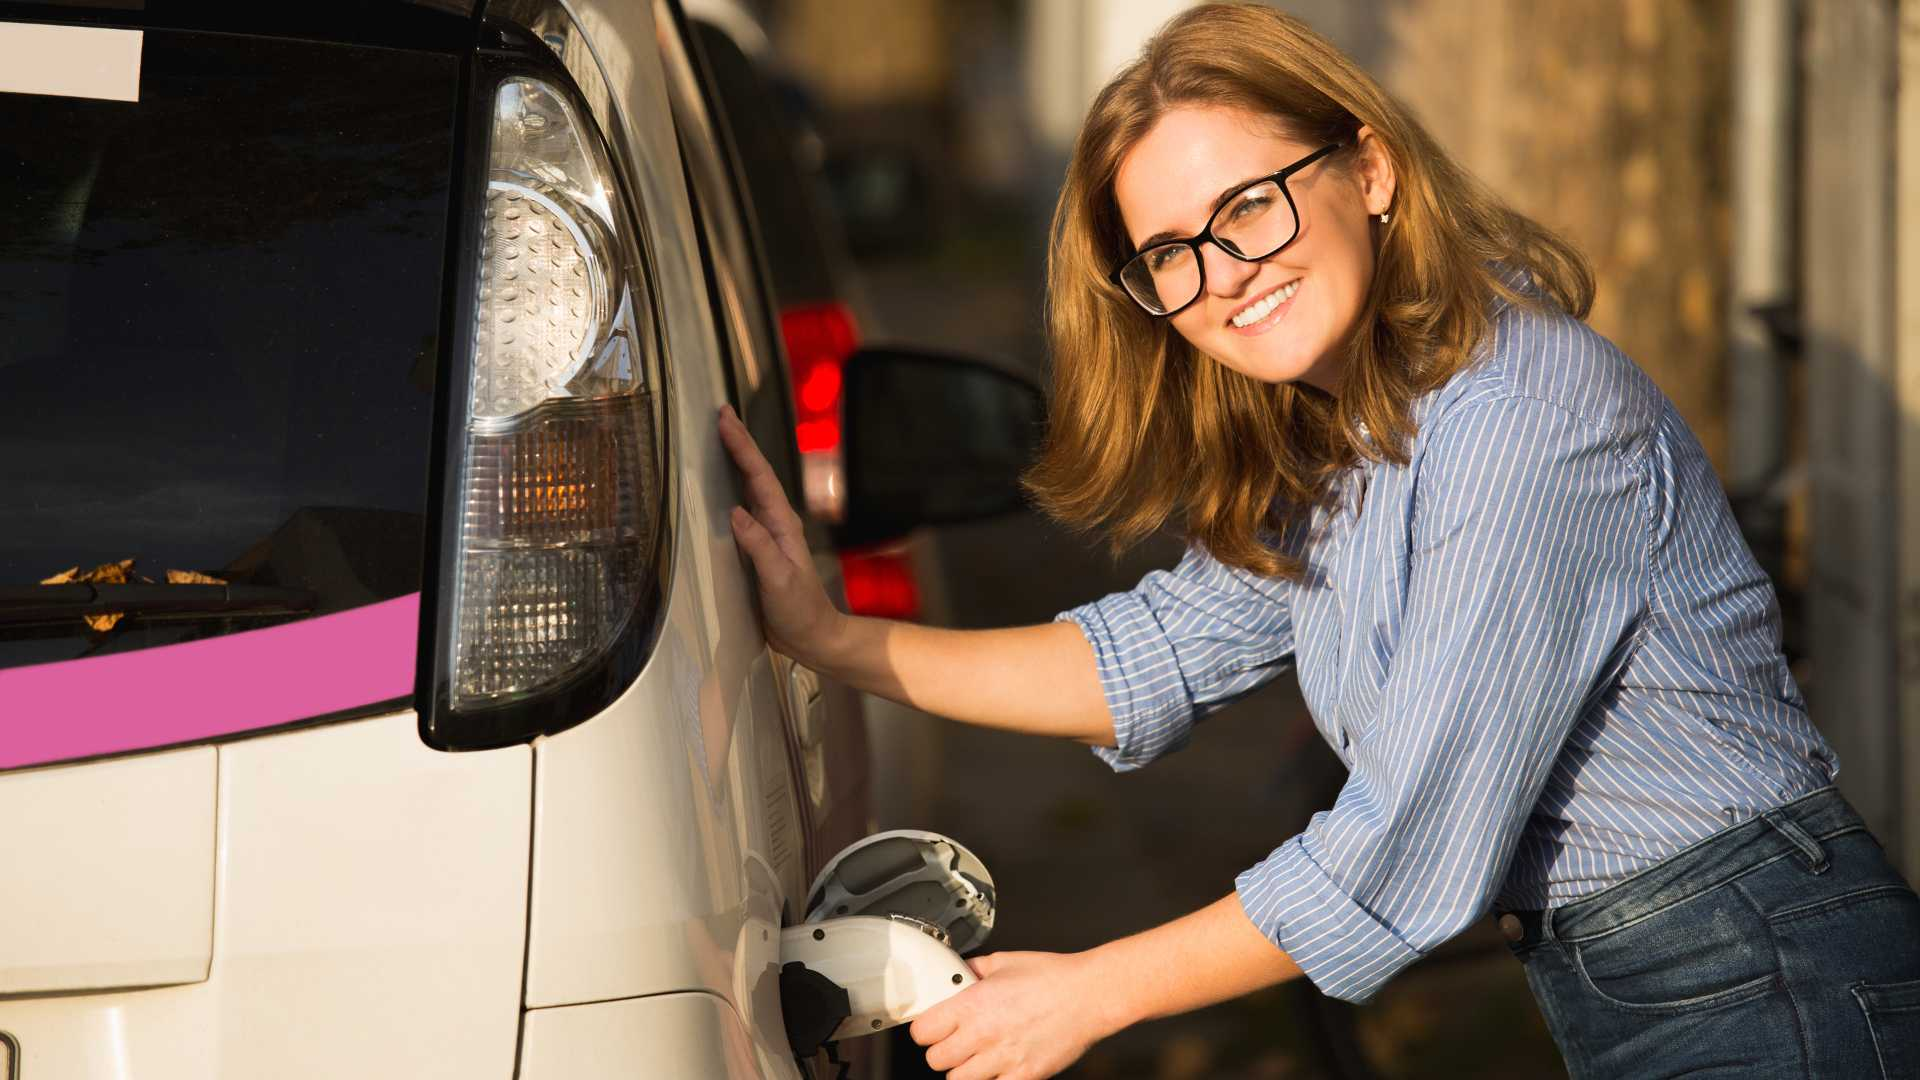 Woman is charging electric car